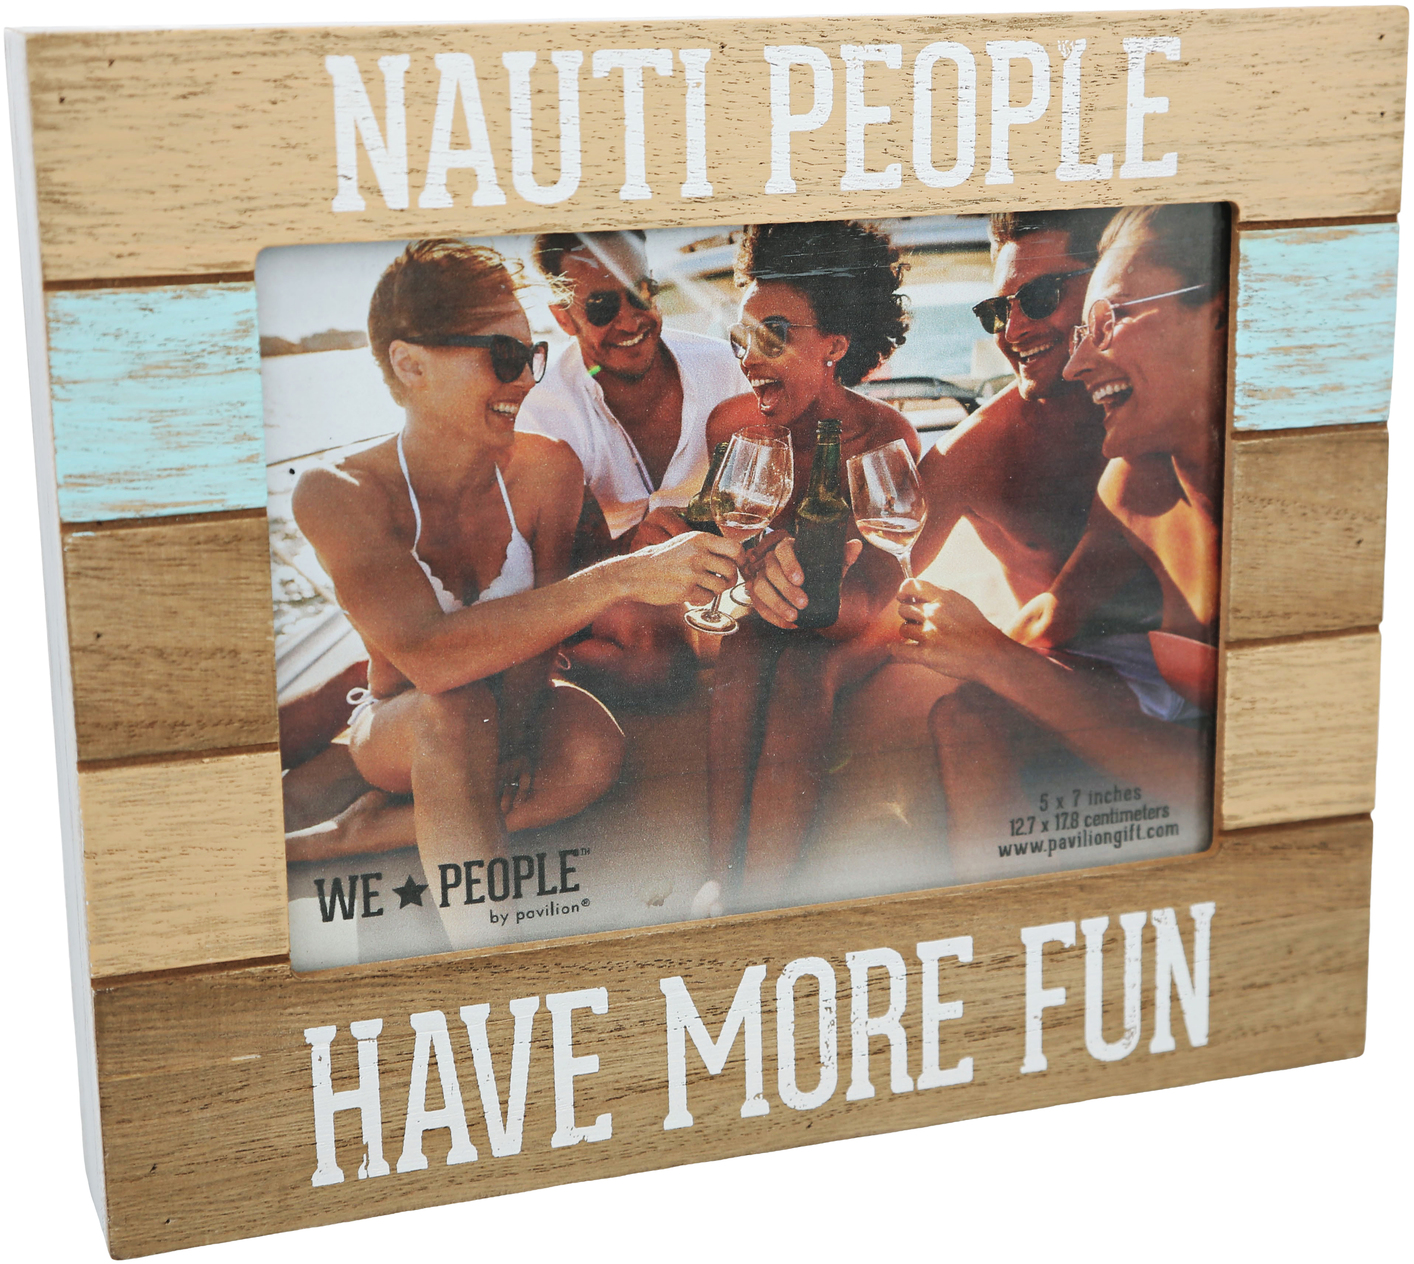 "Nauti People by We People - Nauti People - 9"" x 7.25"" Frame (Holds 5"" x 7"" photo)"